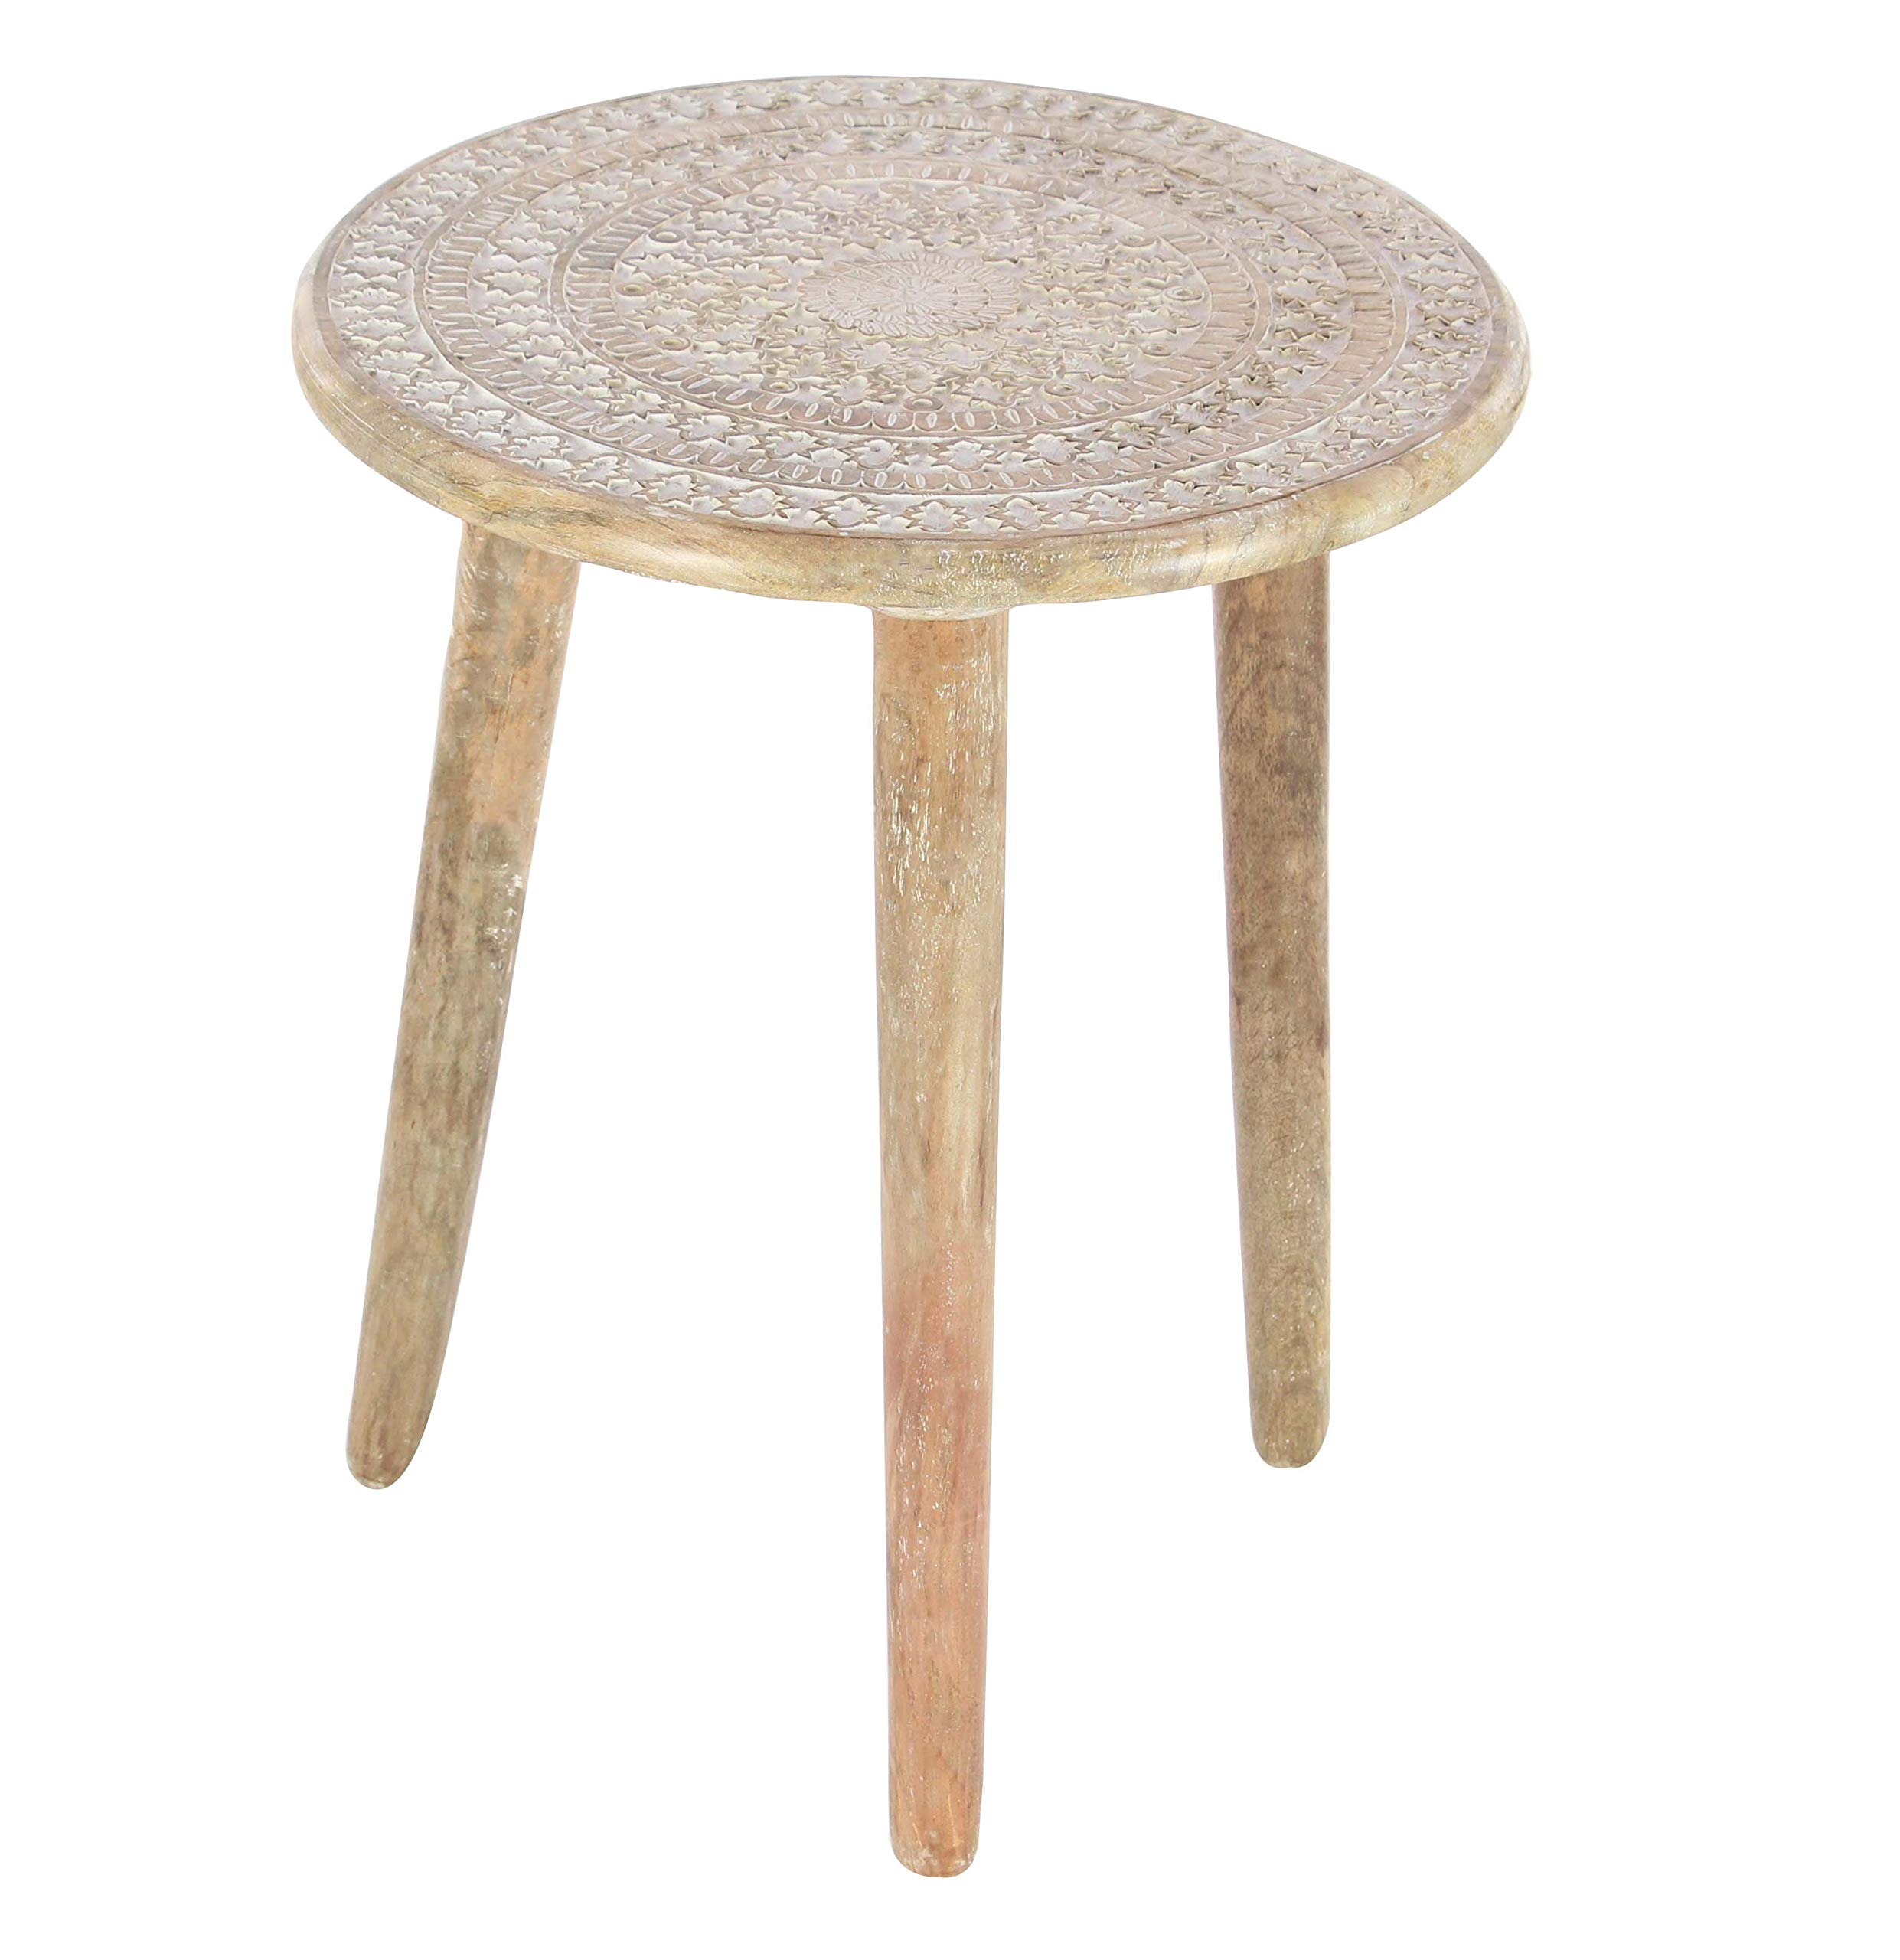 Deco 79 Wood Tripod Round Table, Brown by Deco 79